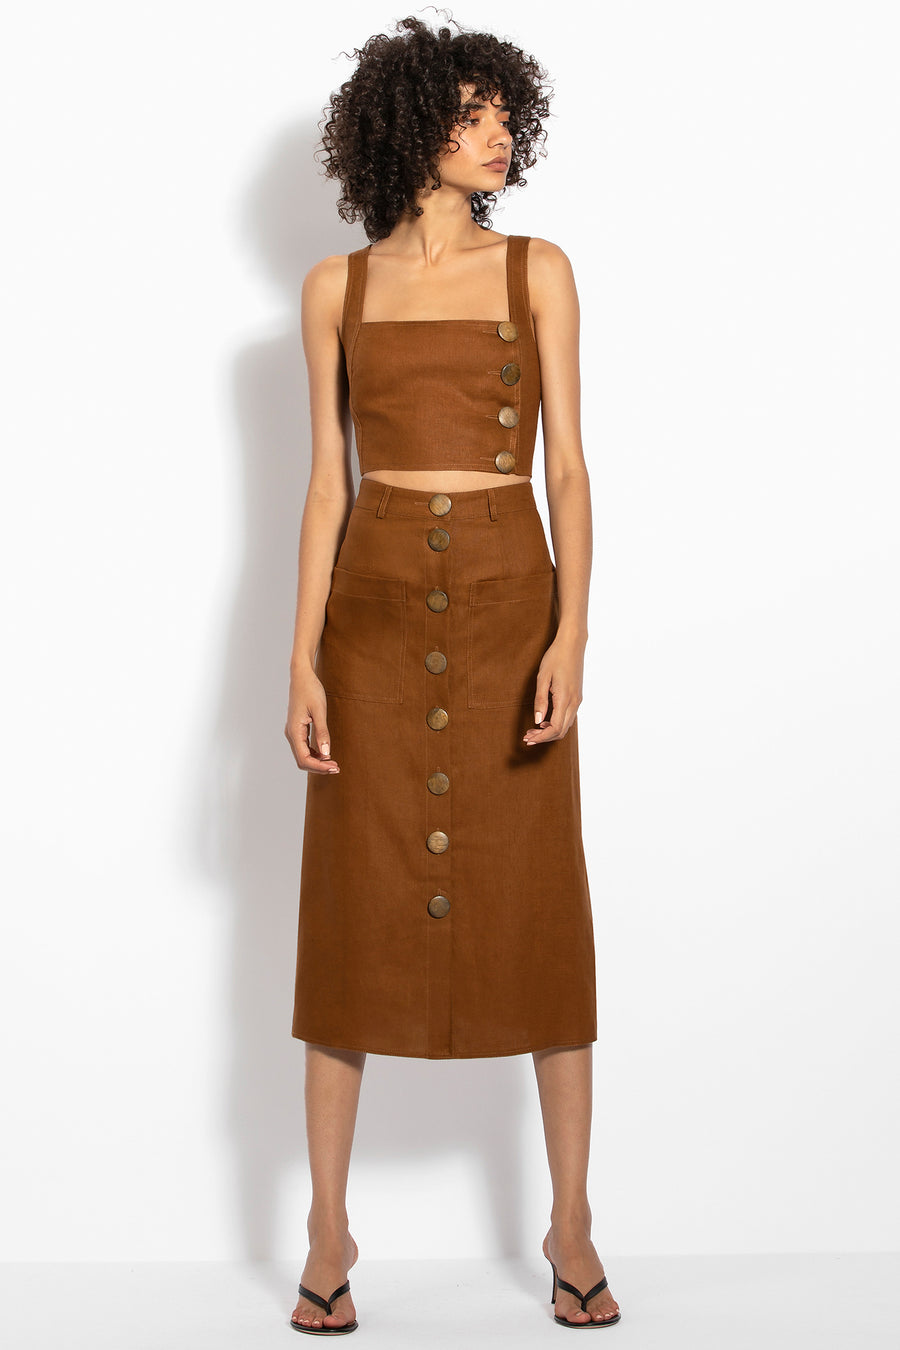 Button Front Skirt - Tan